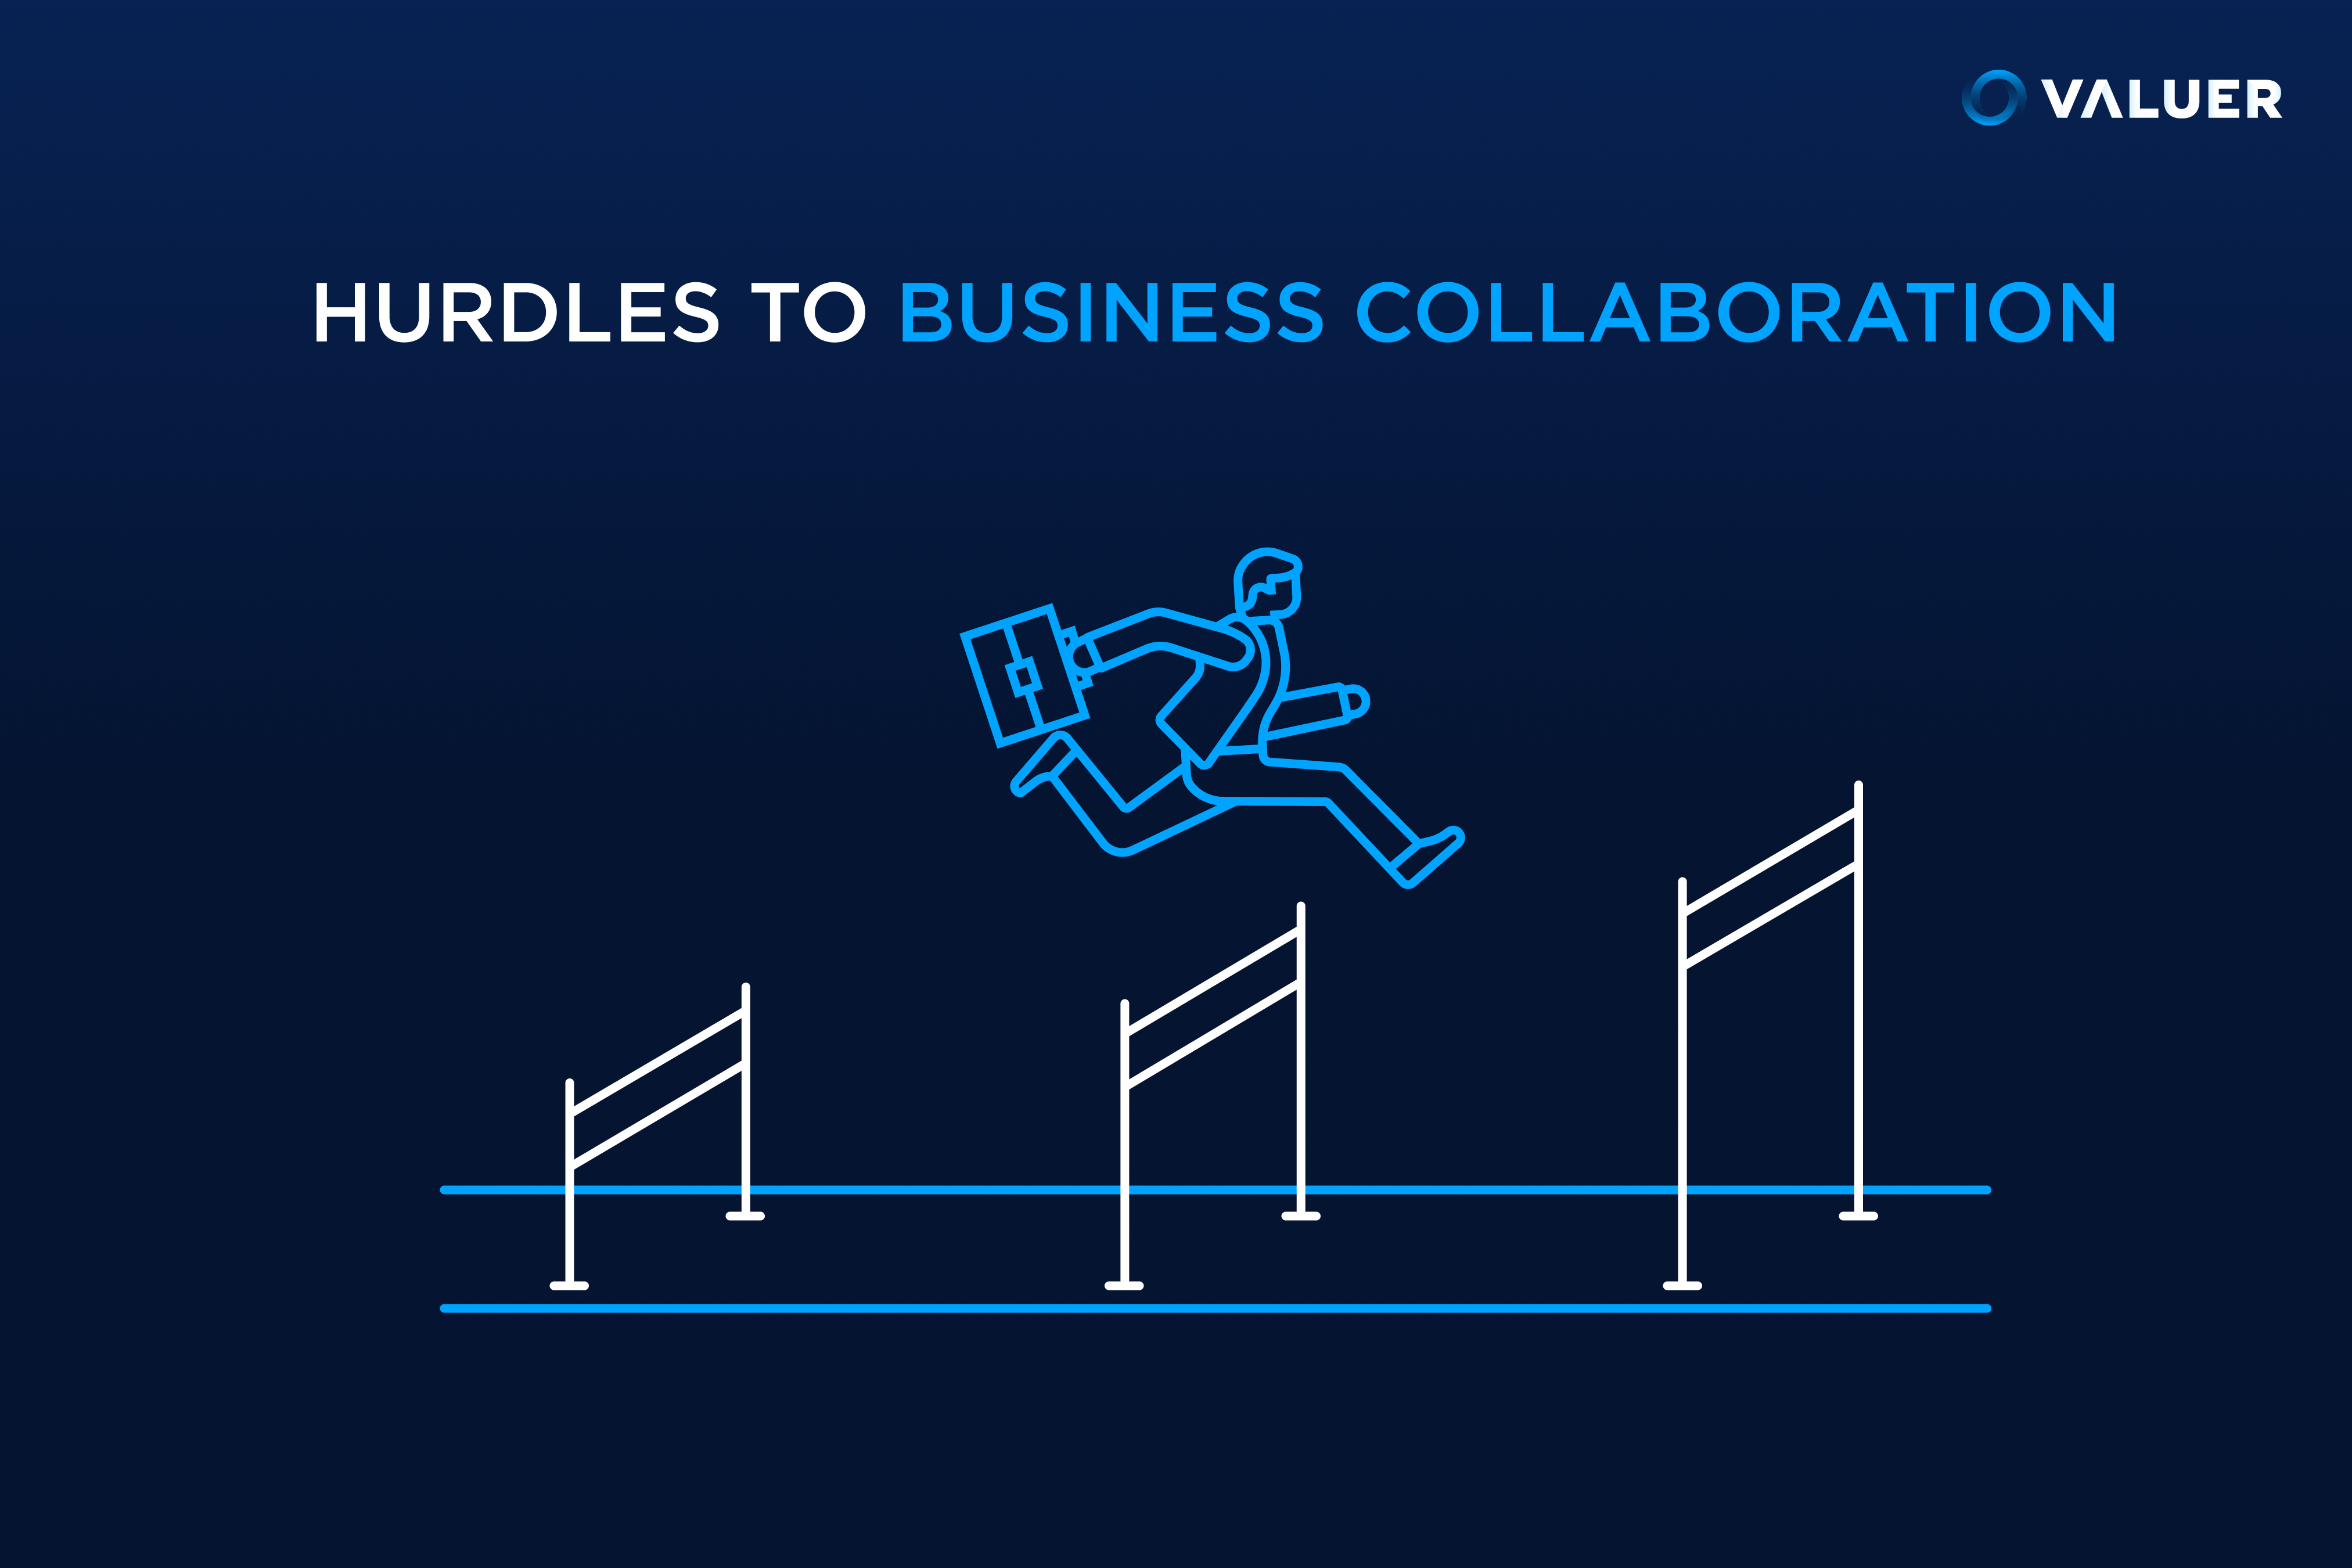 hurdles to business collaboration